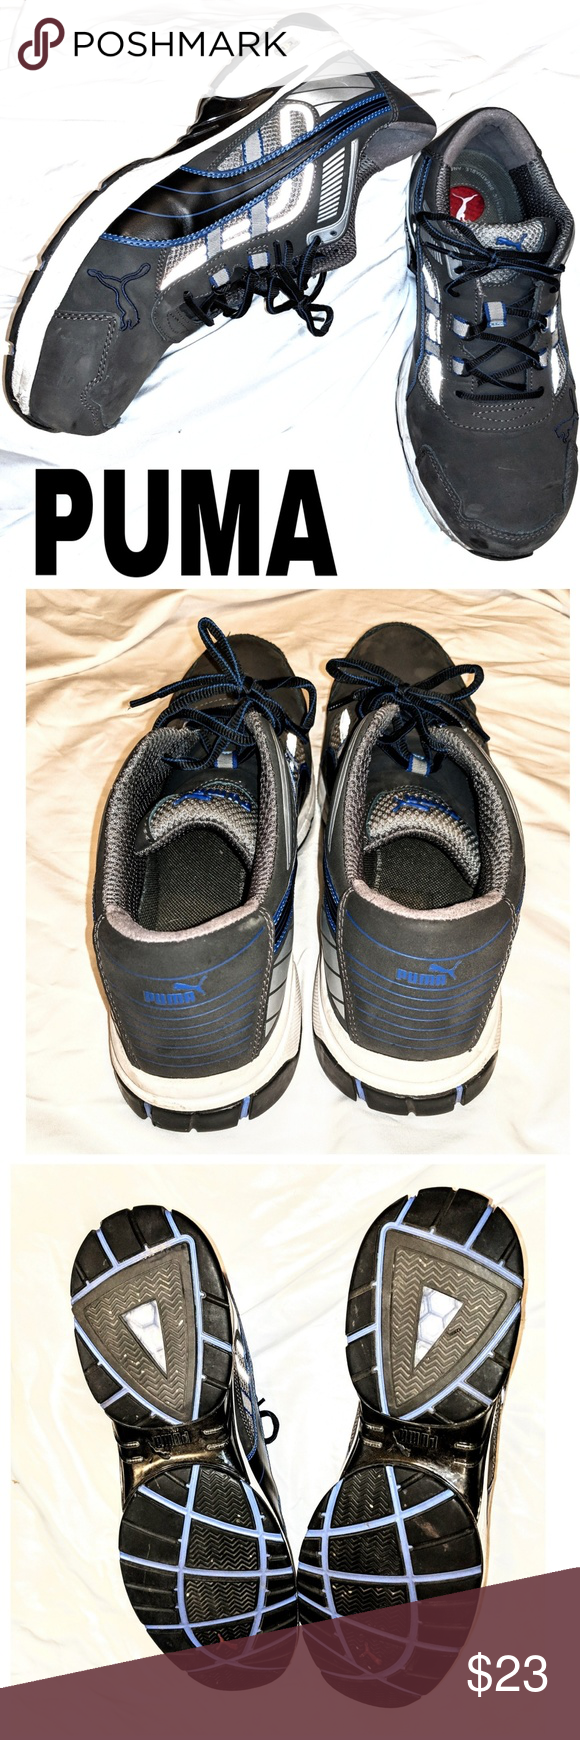 Mens Steal TOE Duo Cell tennis shoes. Size 14 Well pad heel. Super Cradle.  Puma Shoes Sneakers ea7f4ac30cd